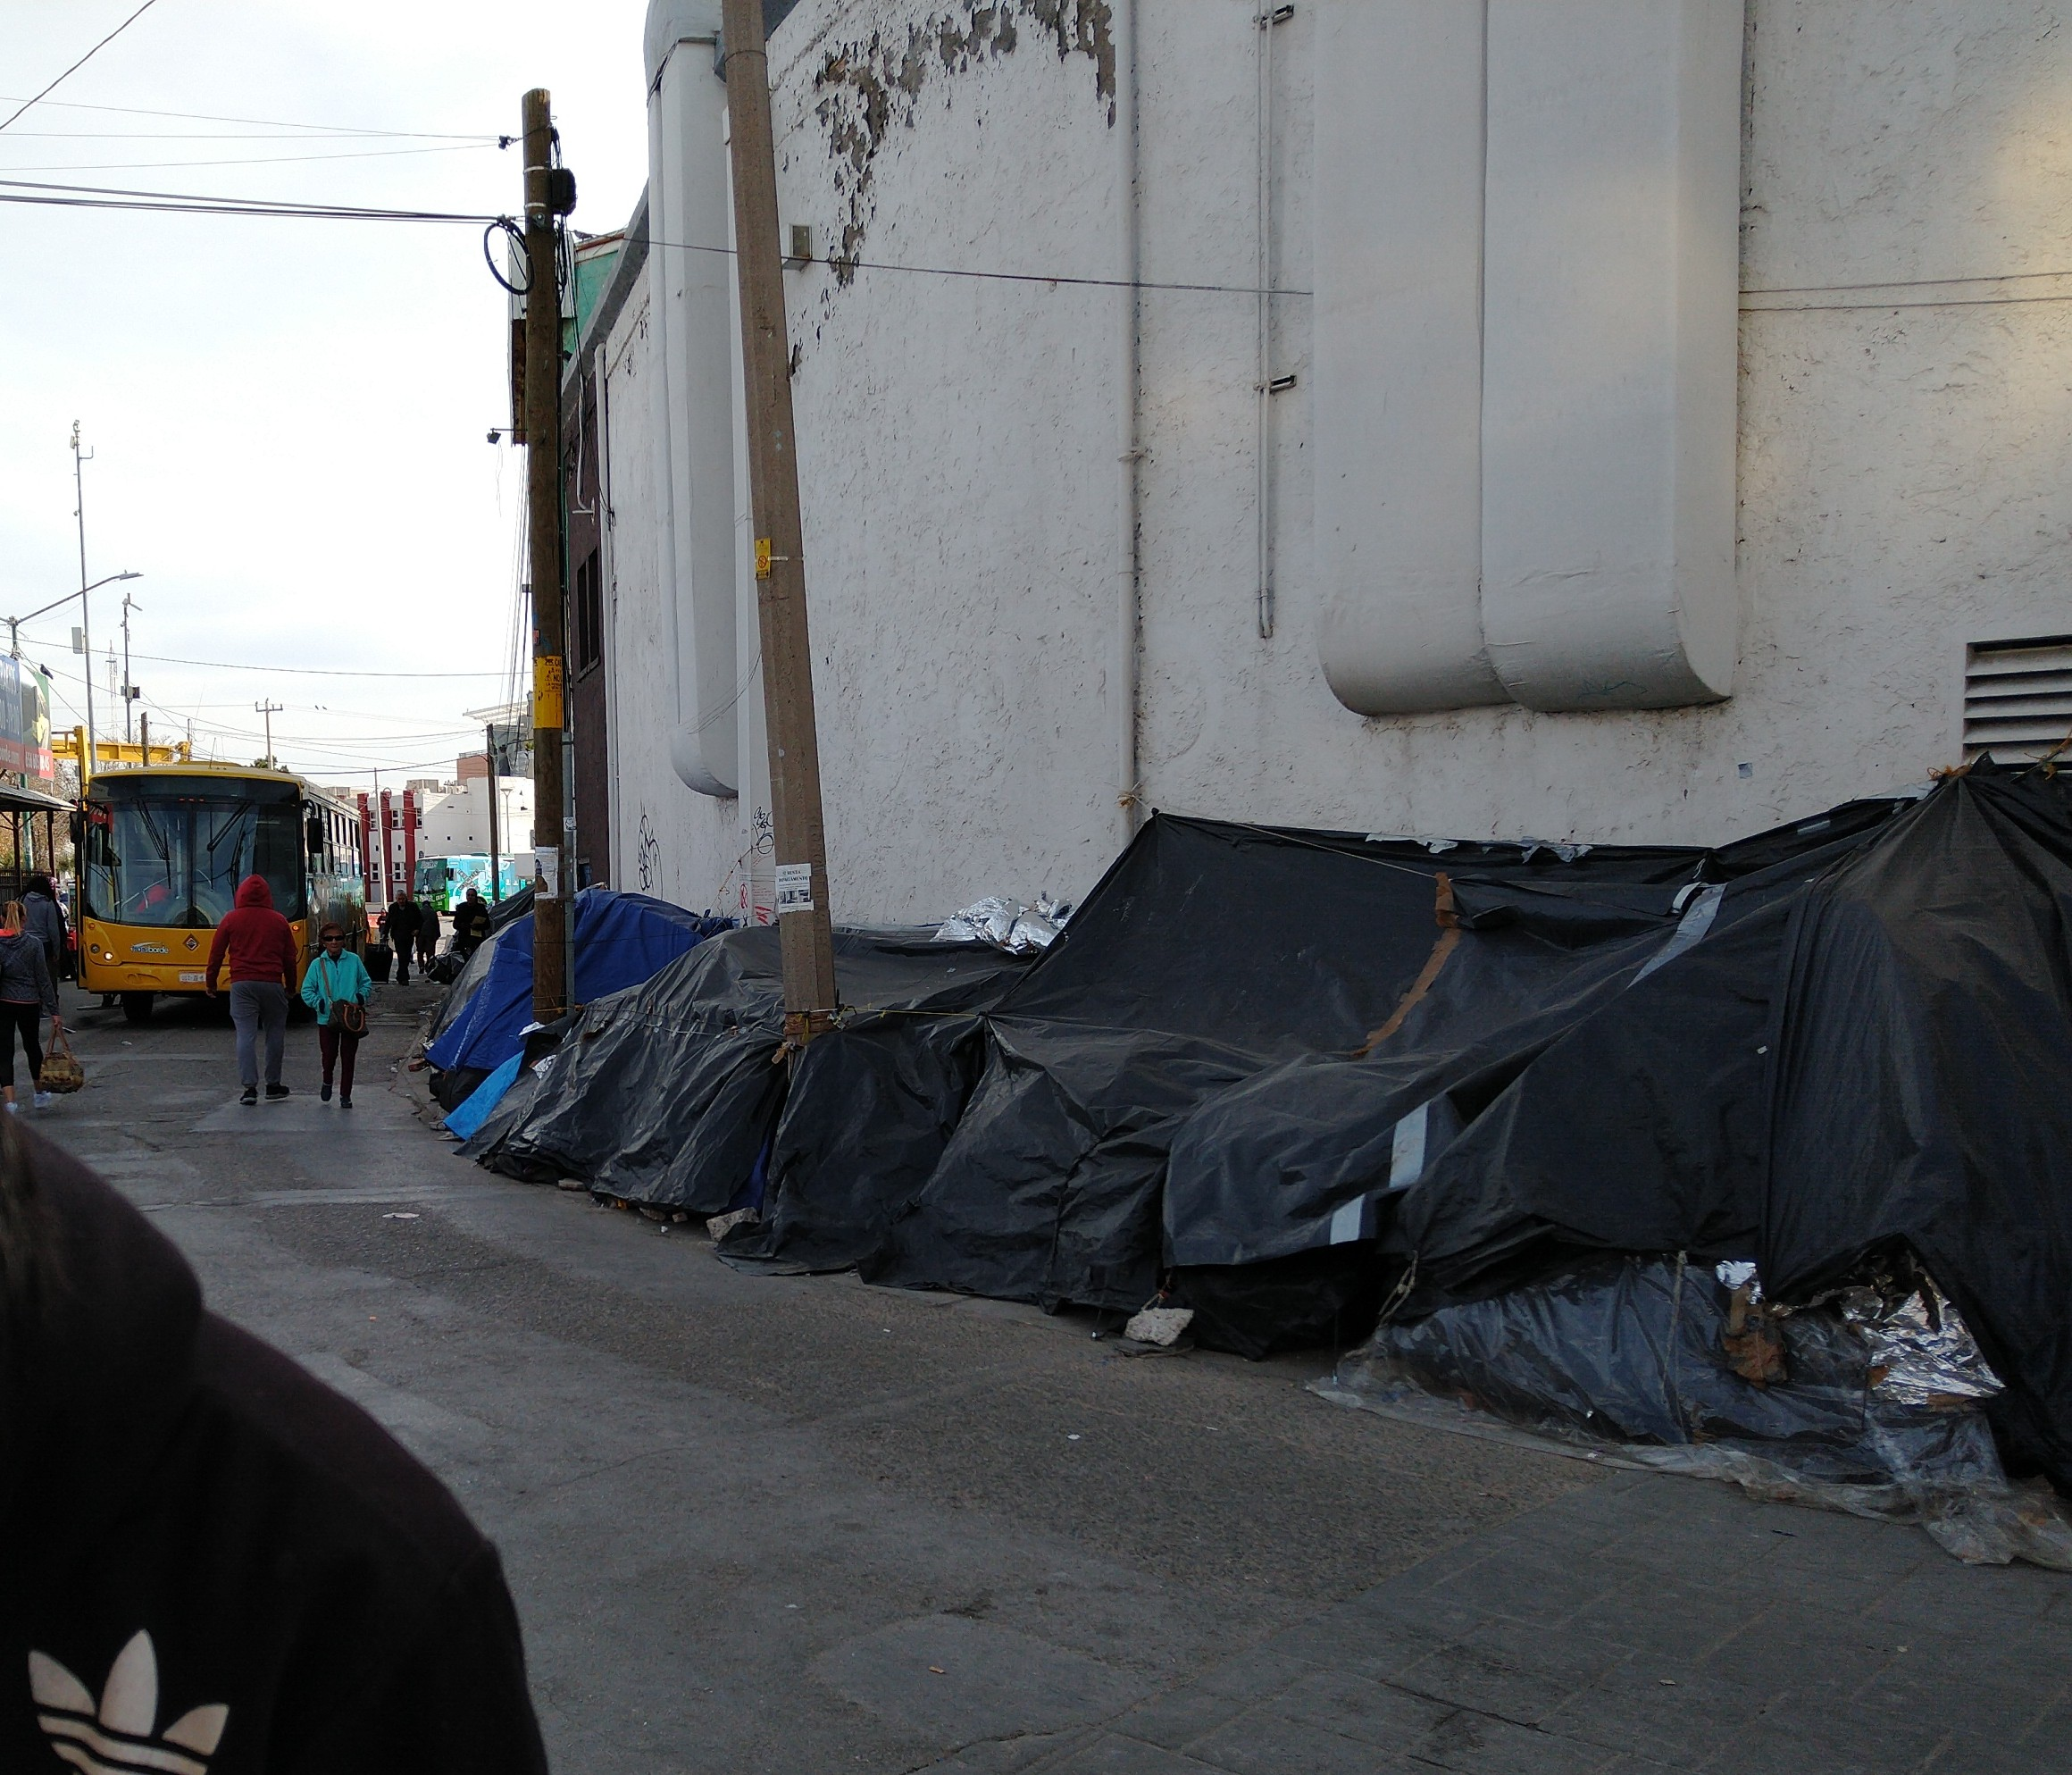 Frustrated And Cold, Mexicans Displaced By Drug Violence